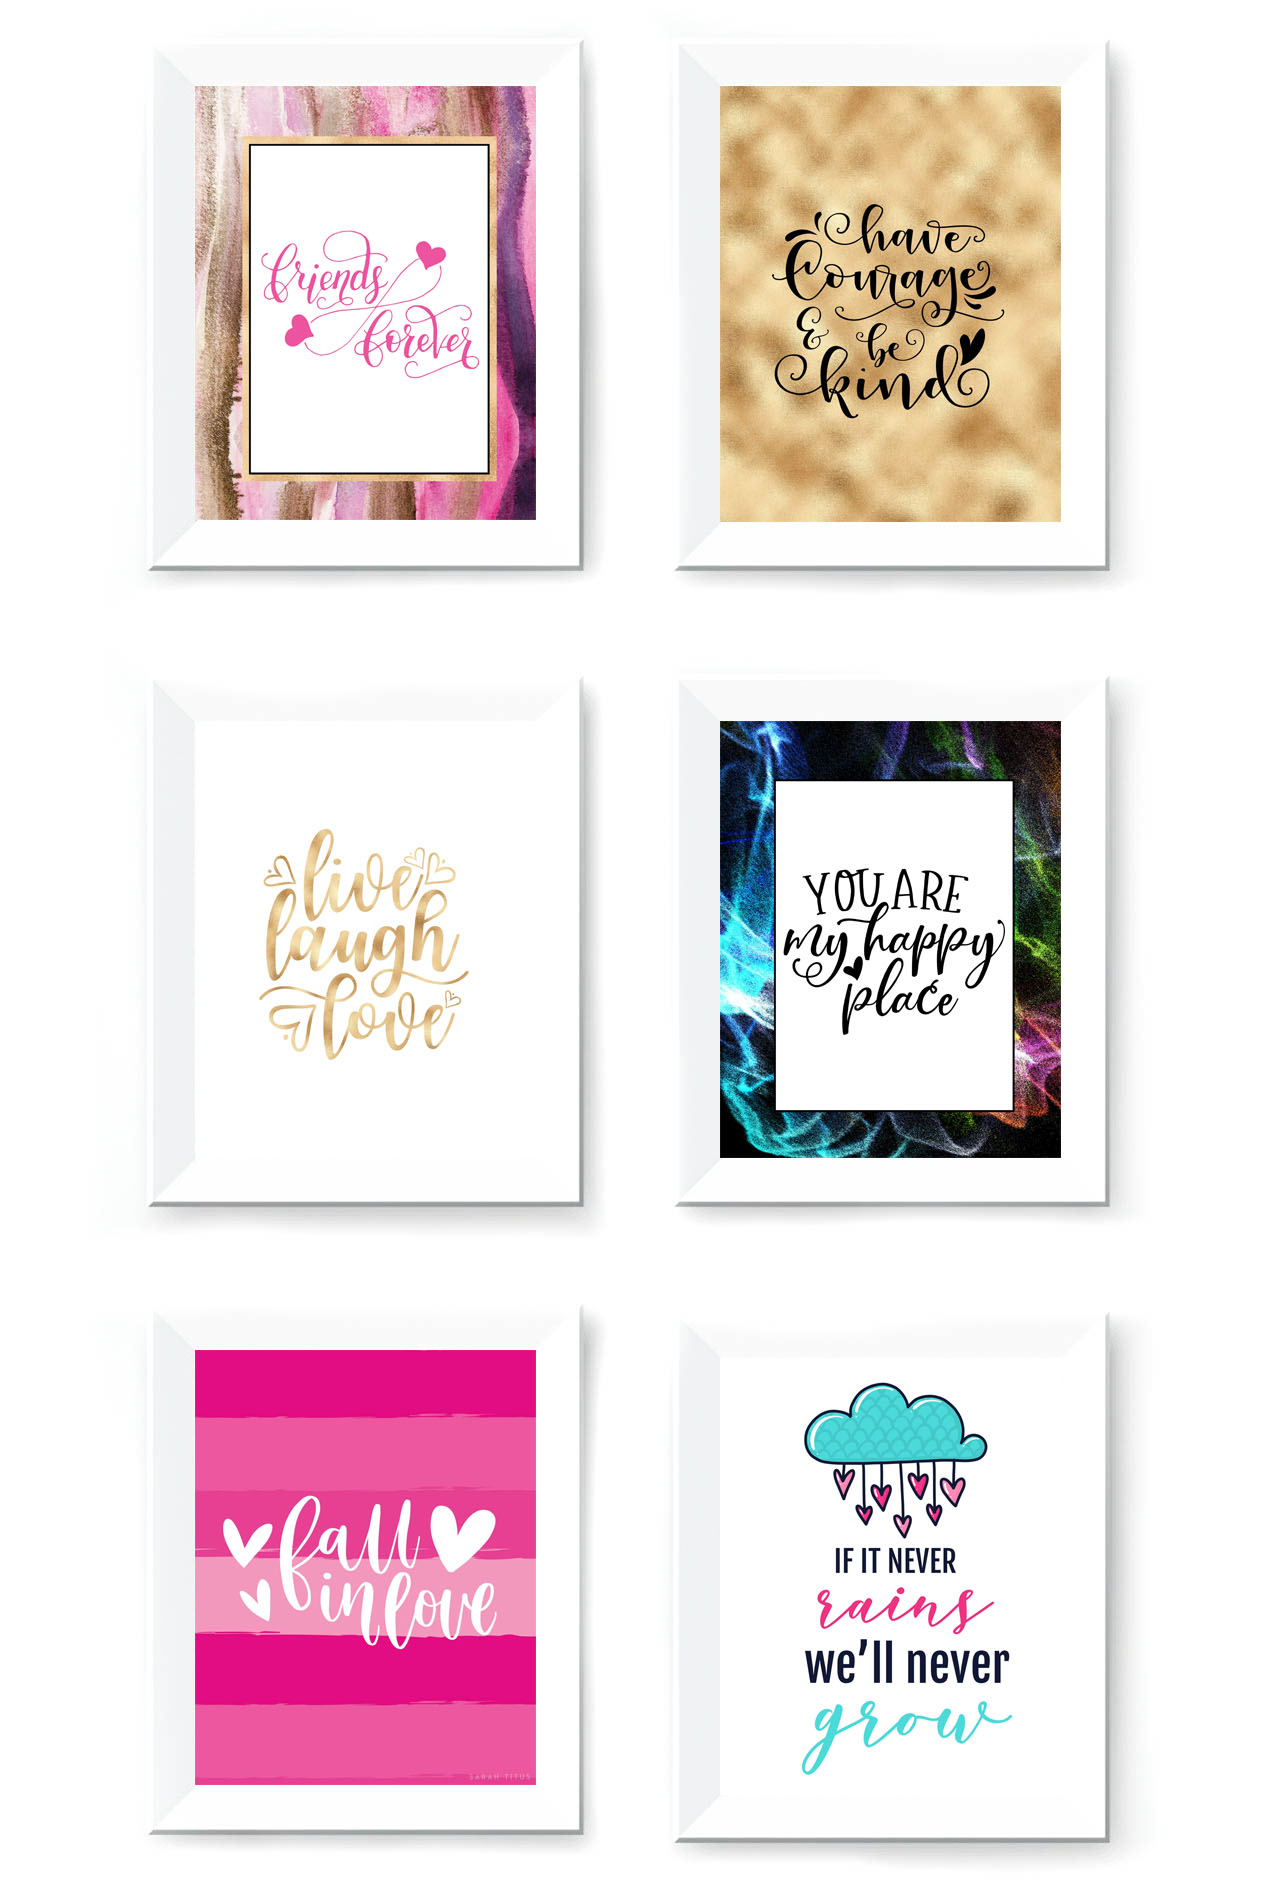 Free Printable Wall Art To Download Now - Sarah Titus - Free Printable Wall Art